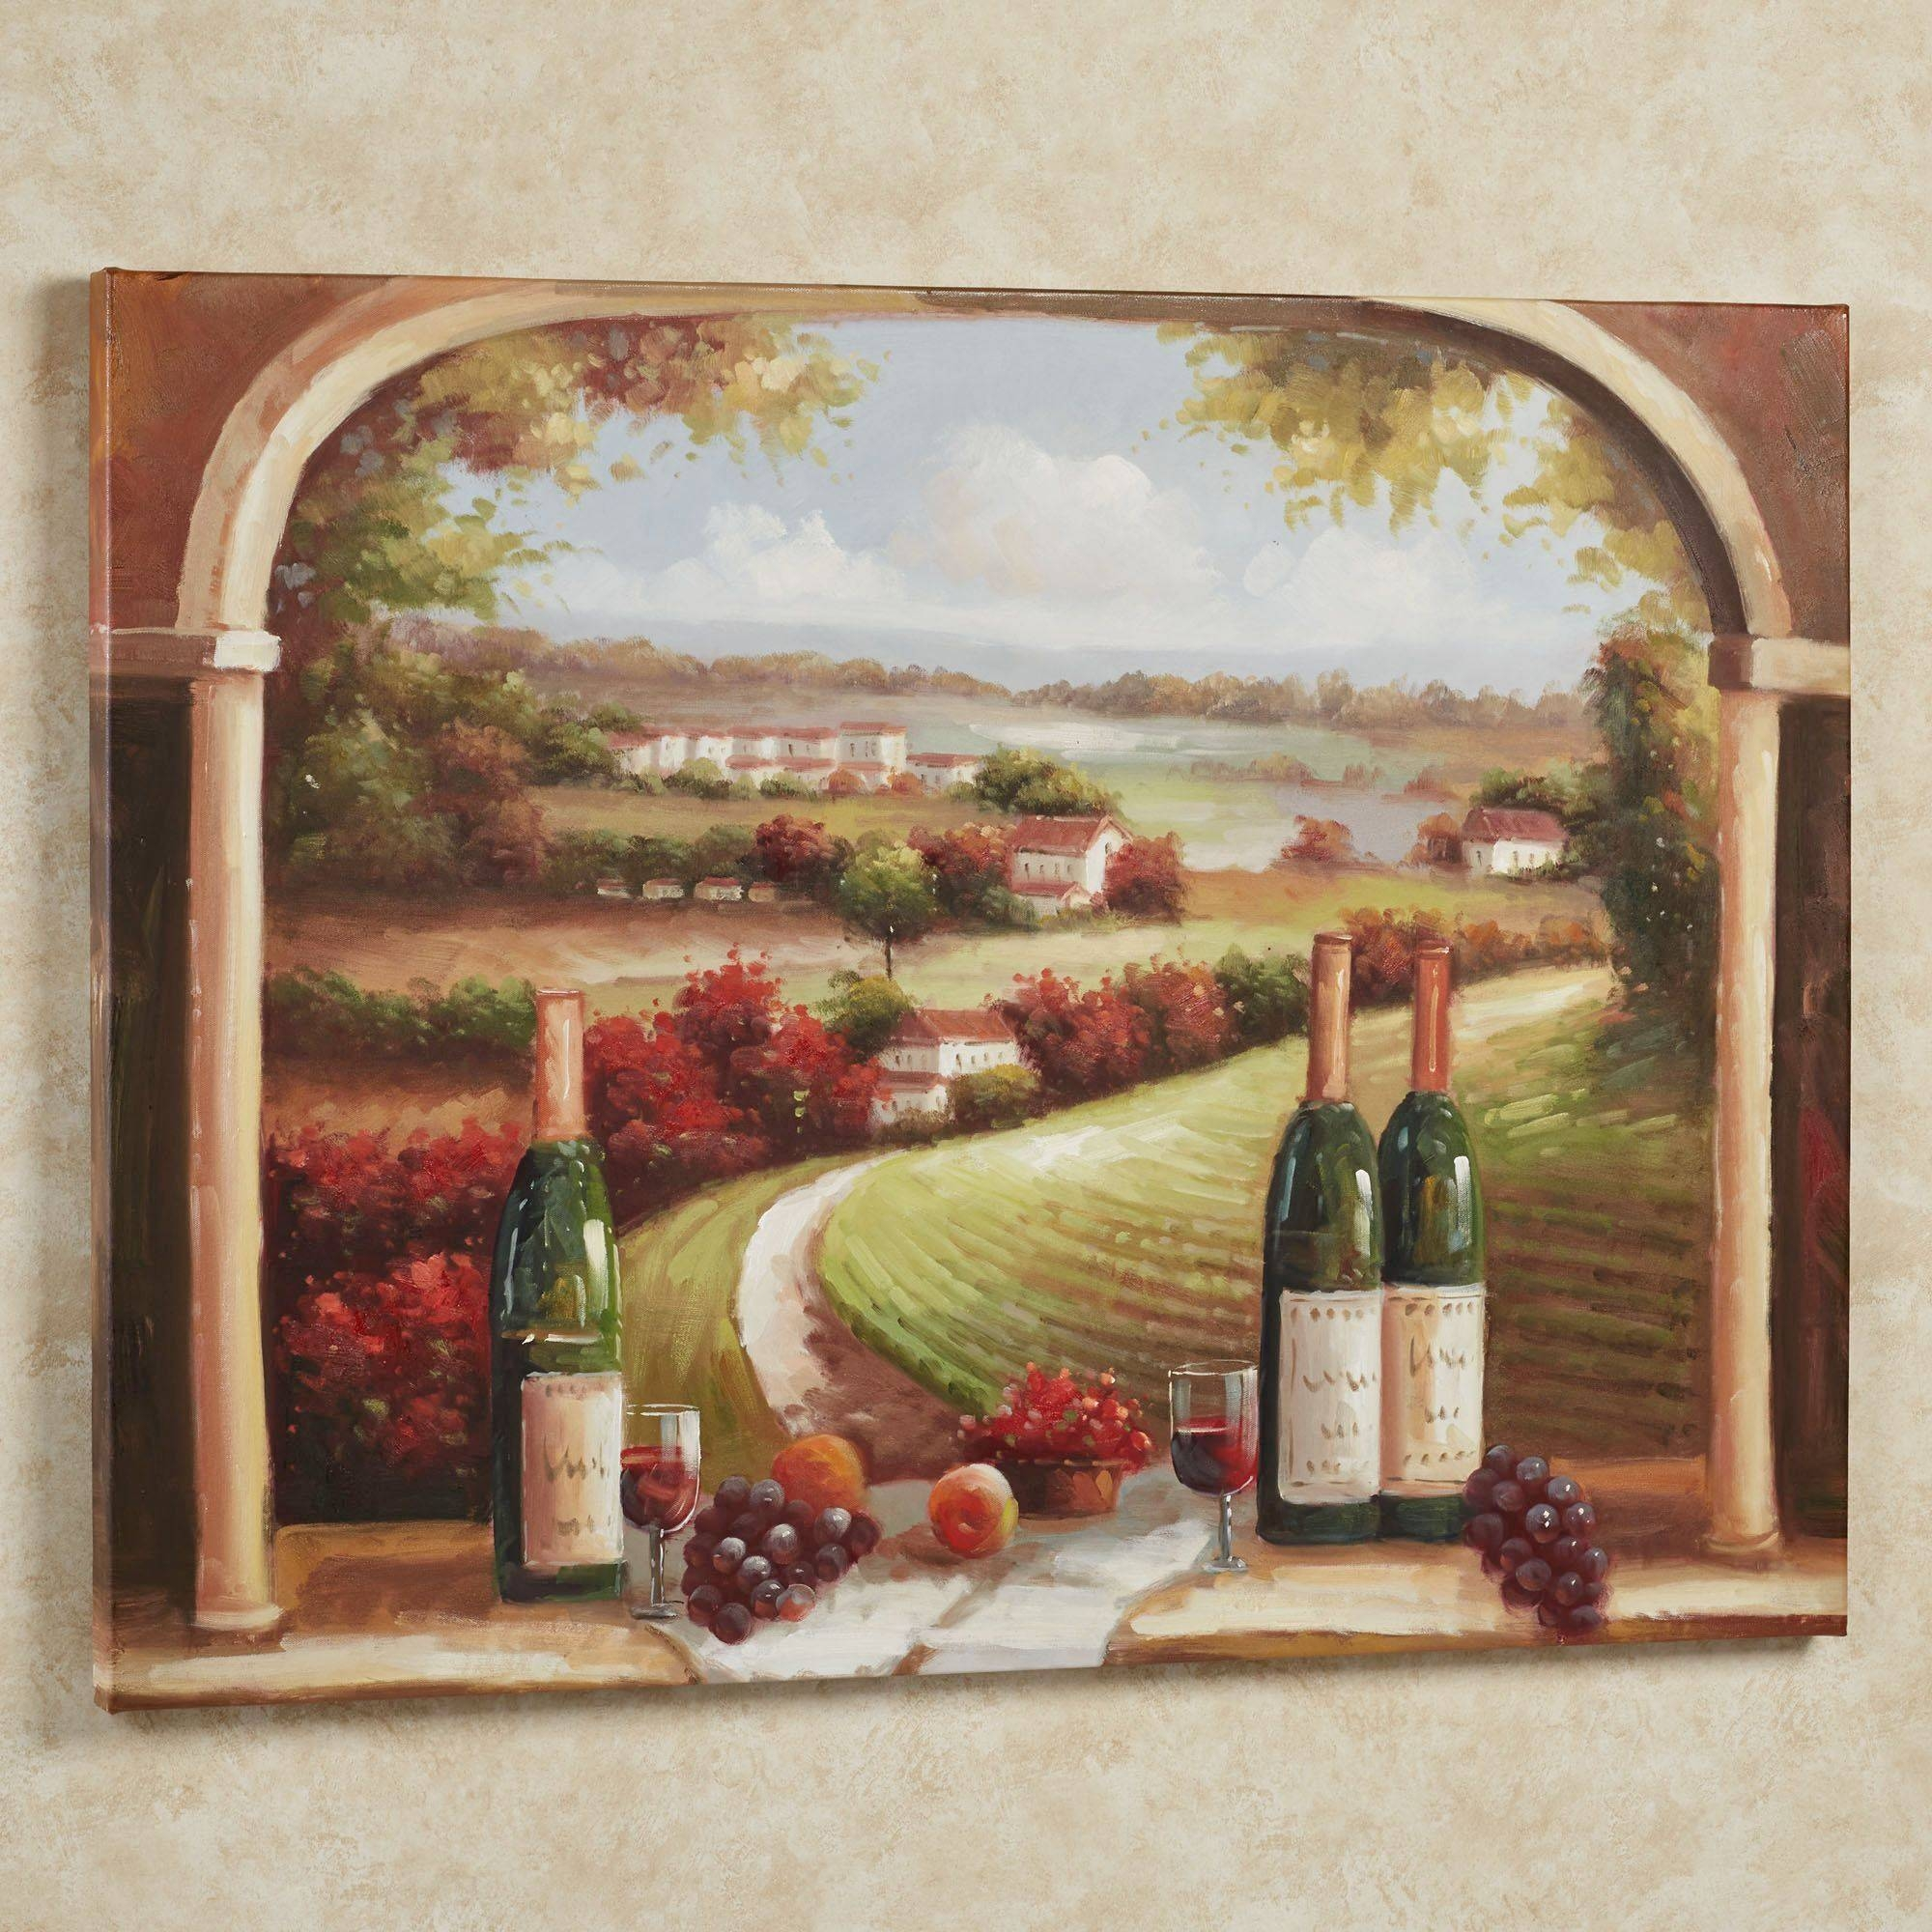 Kitchen And Dining Room Wall Art | Touch Of Class With Regard To Most Current Grape Wall Art (View 8 of 22)